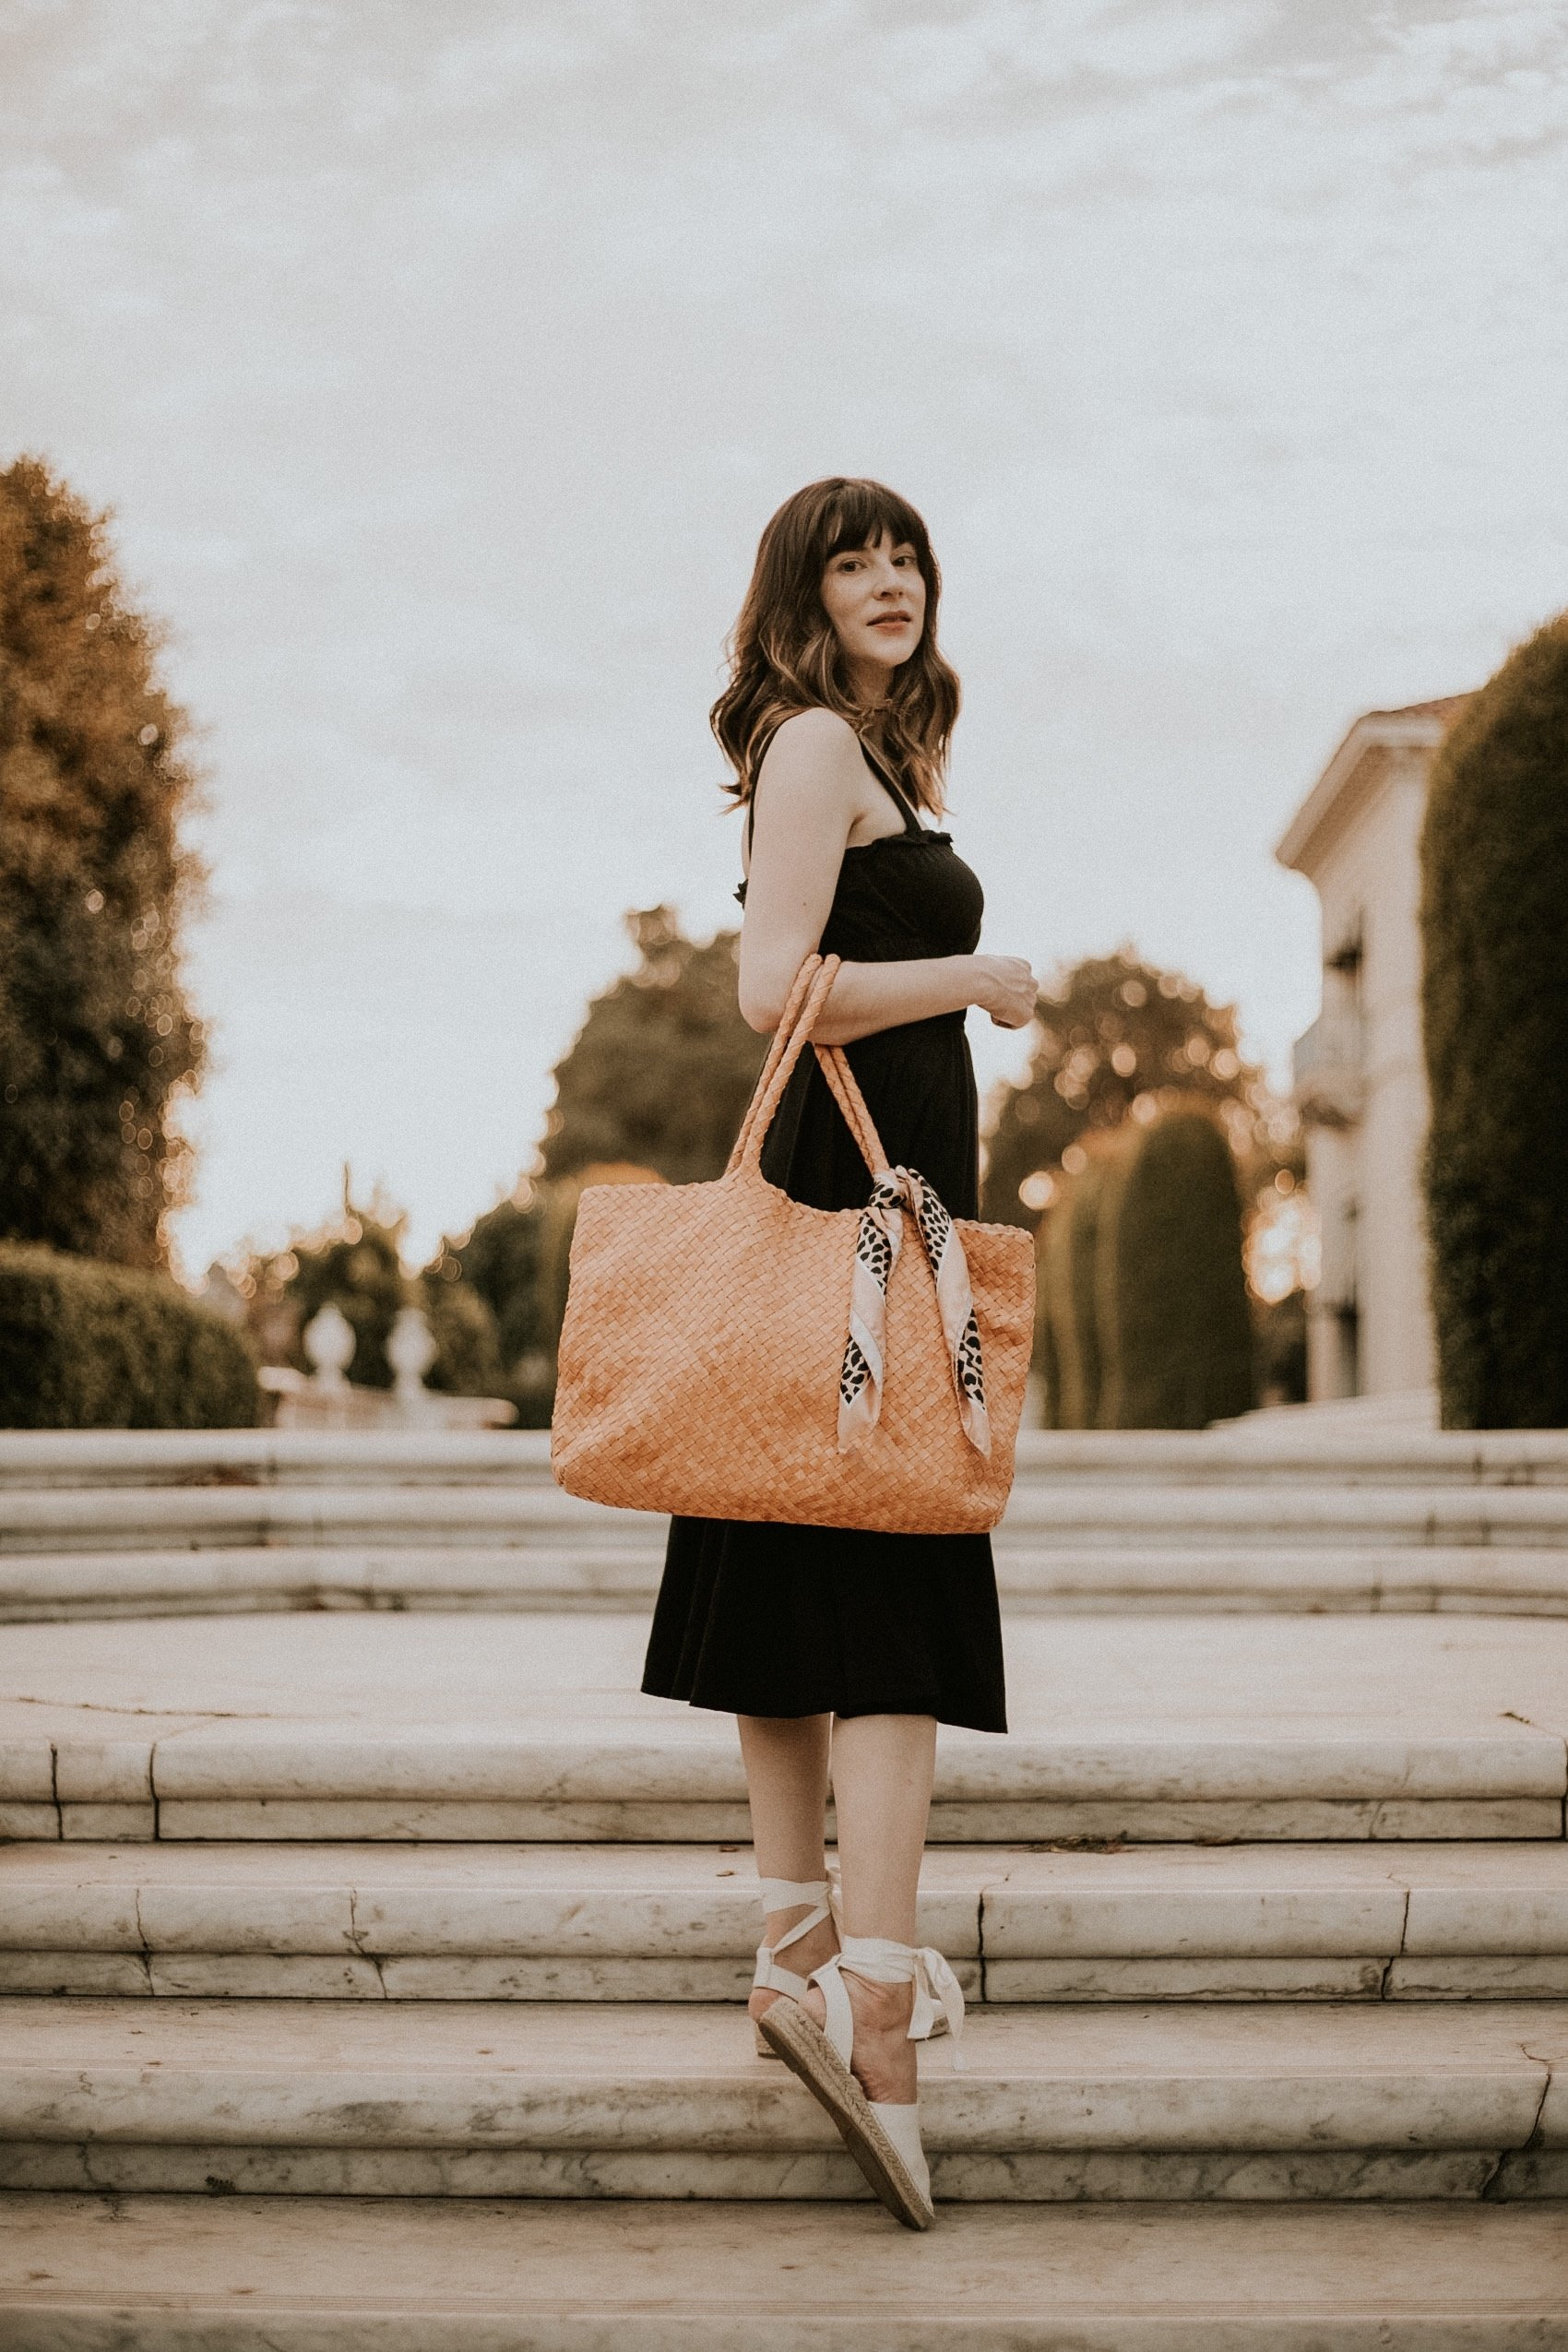 Milaner Classic Elena Woven Tote Bag with Reformation Dress